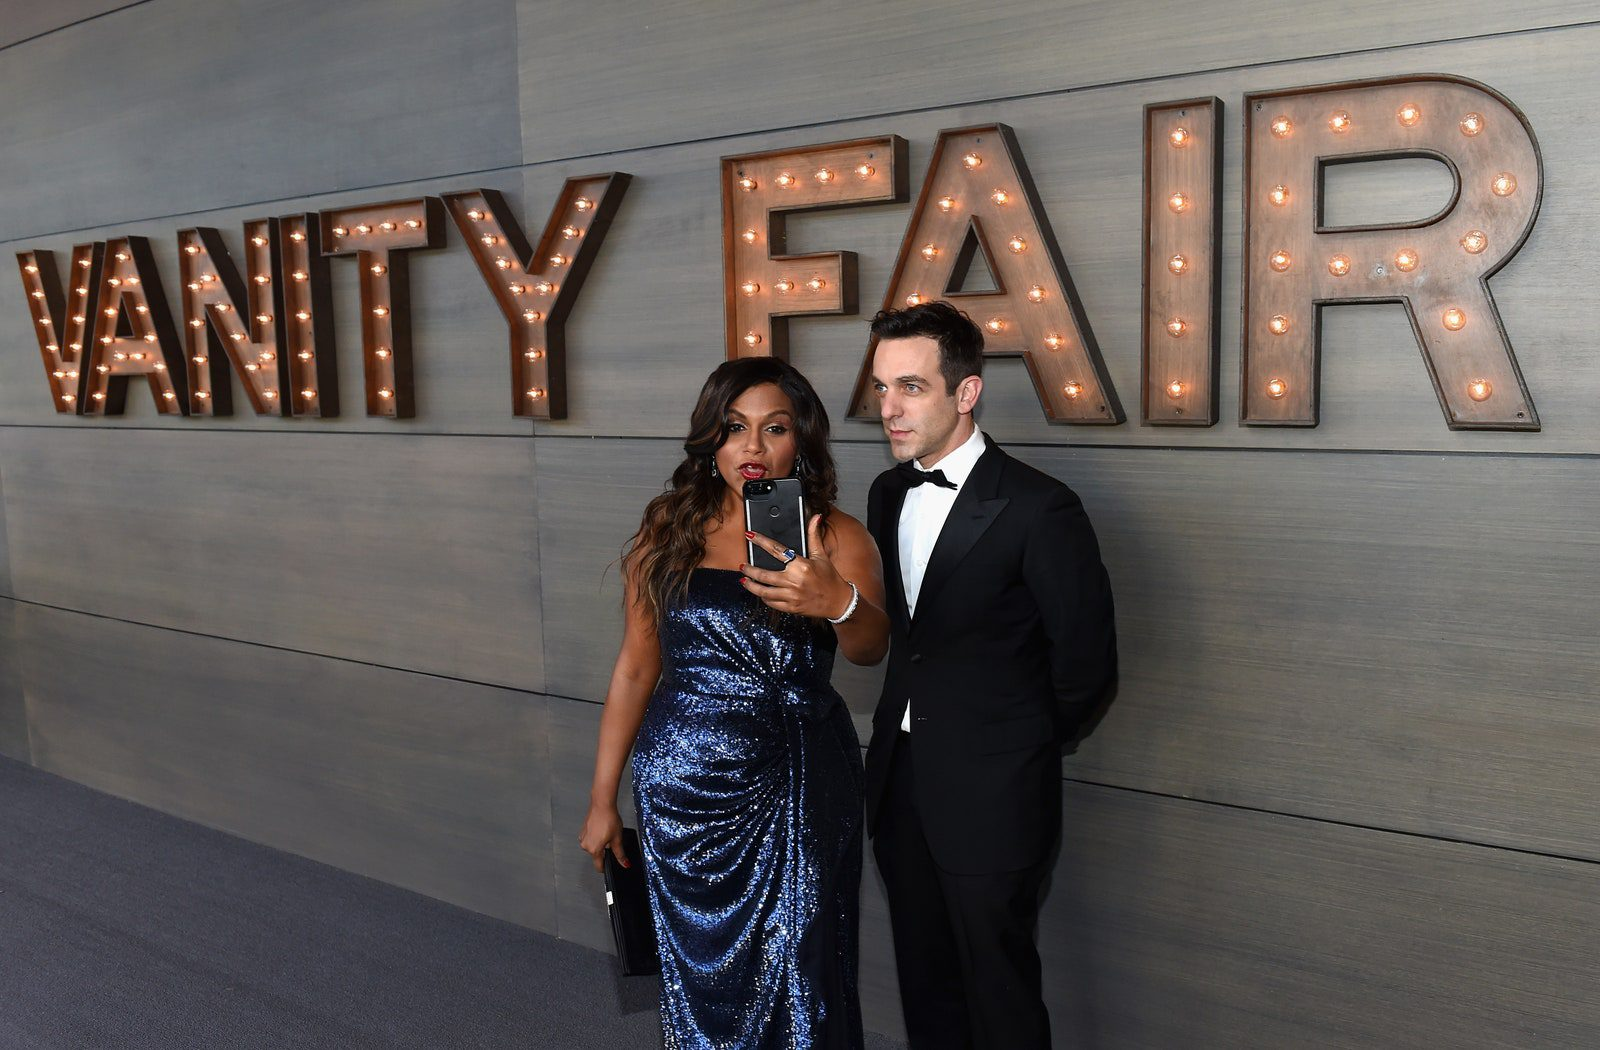 Mindy Kaling and BJ Novak: What's Their Relationship?